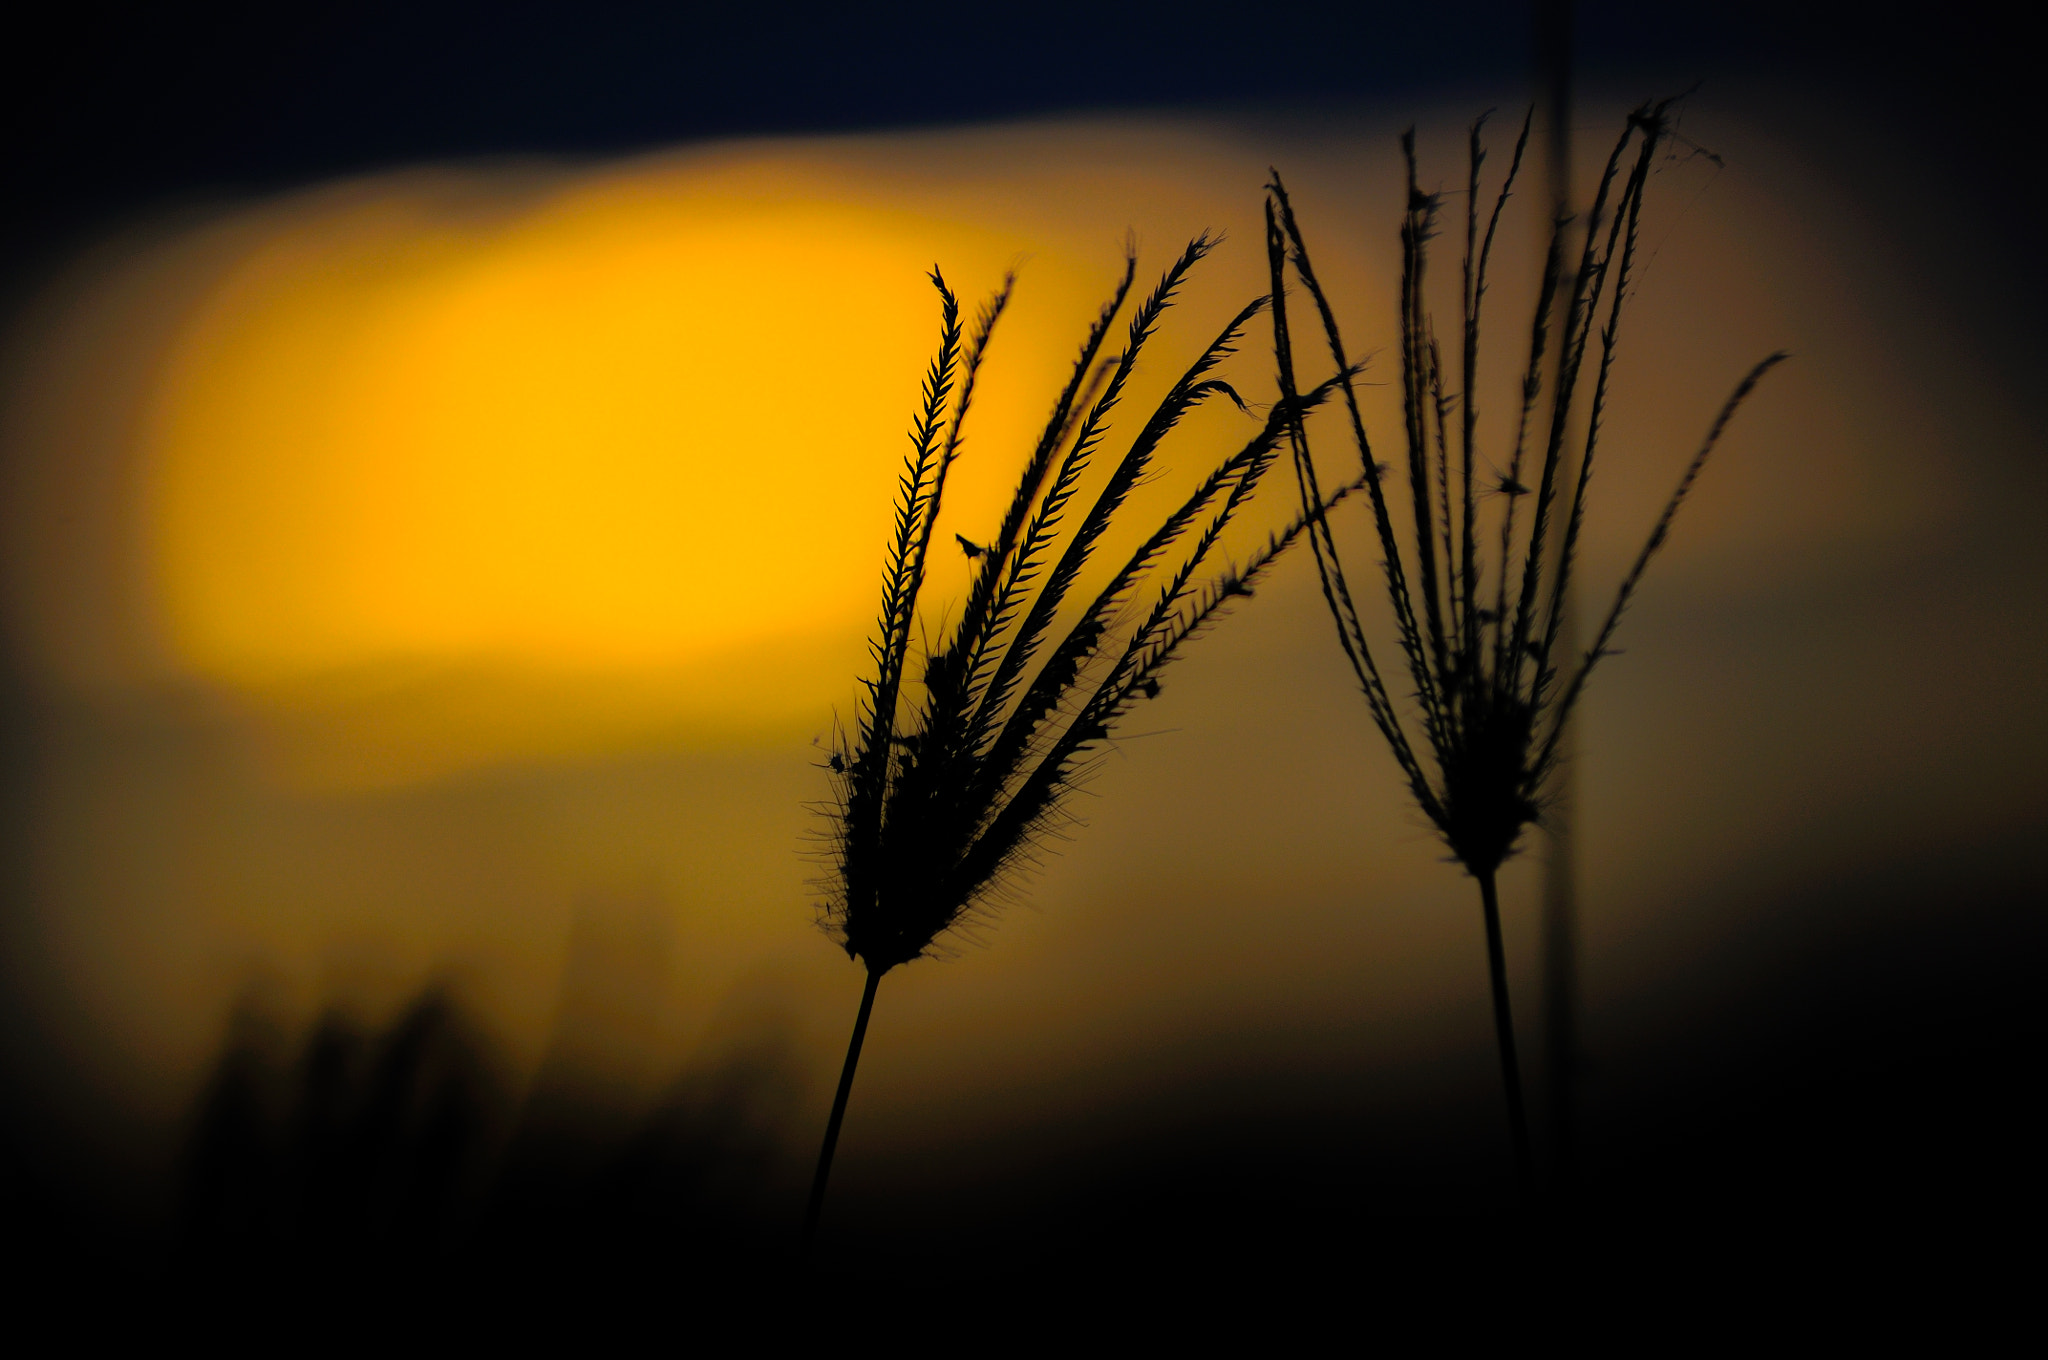 Photograph Grass in the sun by Naphat Sripated on 500px